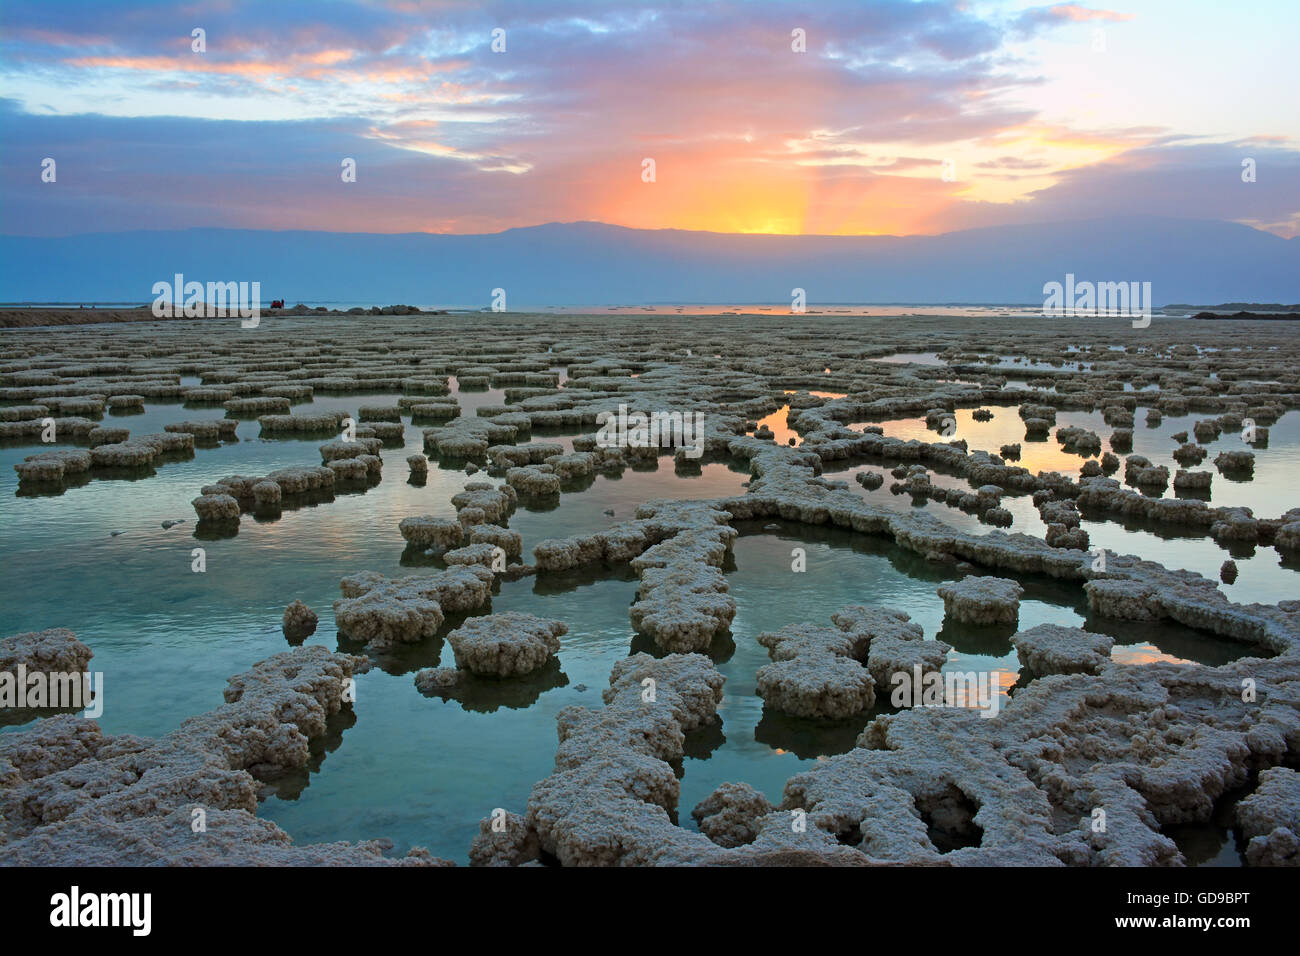 Sunrise over salt formation in the Dead sea, Israel - Stock Image